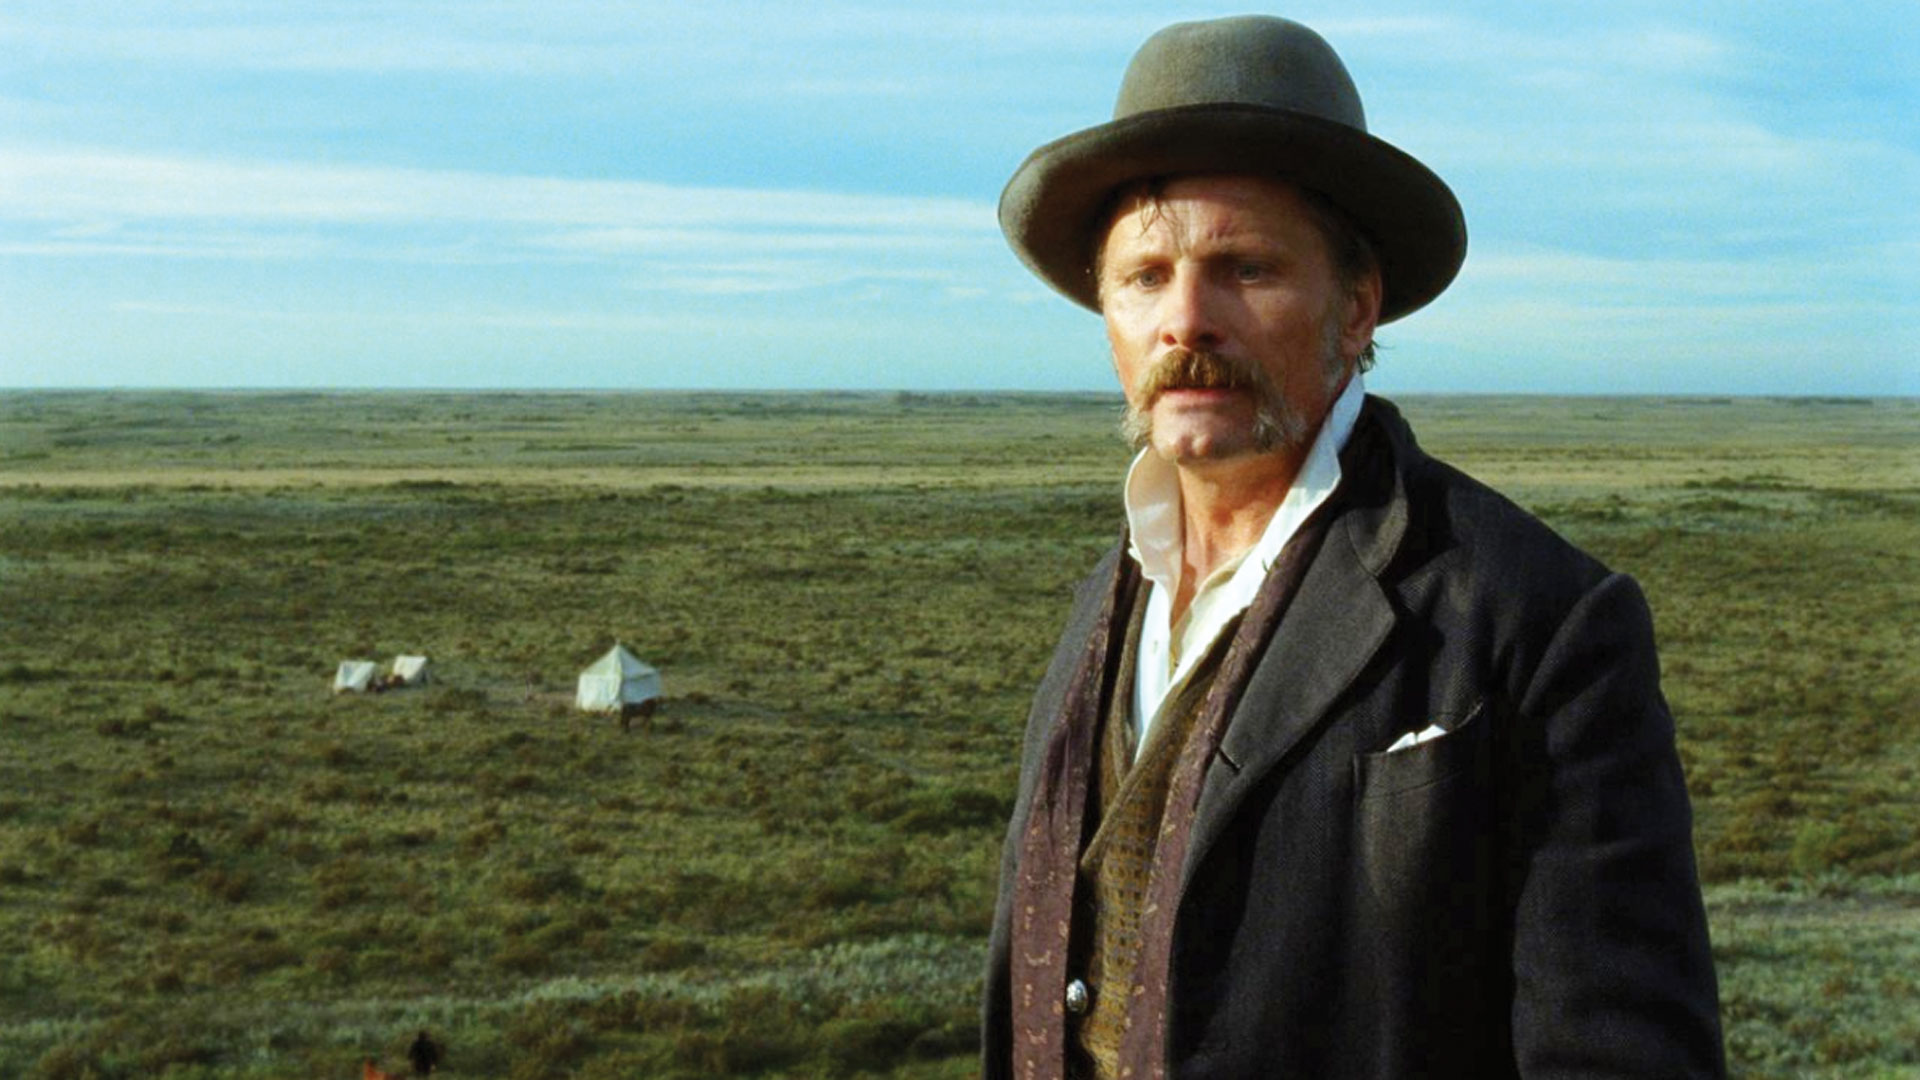 From Chaplin in DR to Viggo Mortensen in Argentina: 9 Must-See Movies at the SF Film Festival